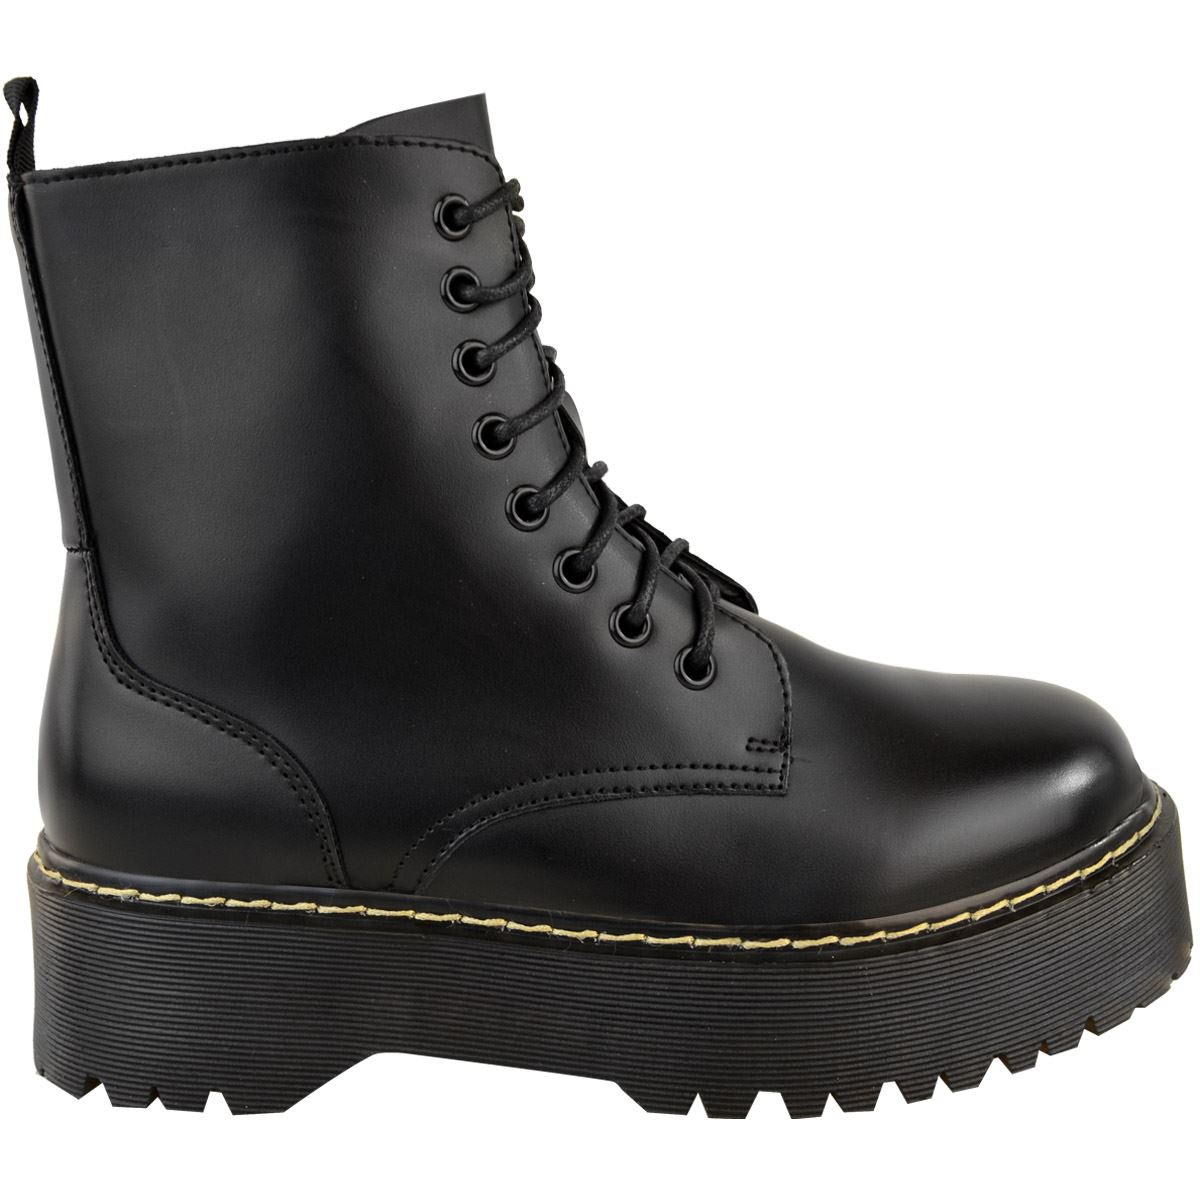 Womens-Ladies-Doc-Chunky-Lace-Up-Ankle-Boots-Platform-Icon-Retro-Goth-Punk-Black thumbnail 4